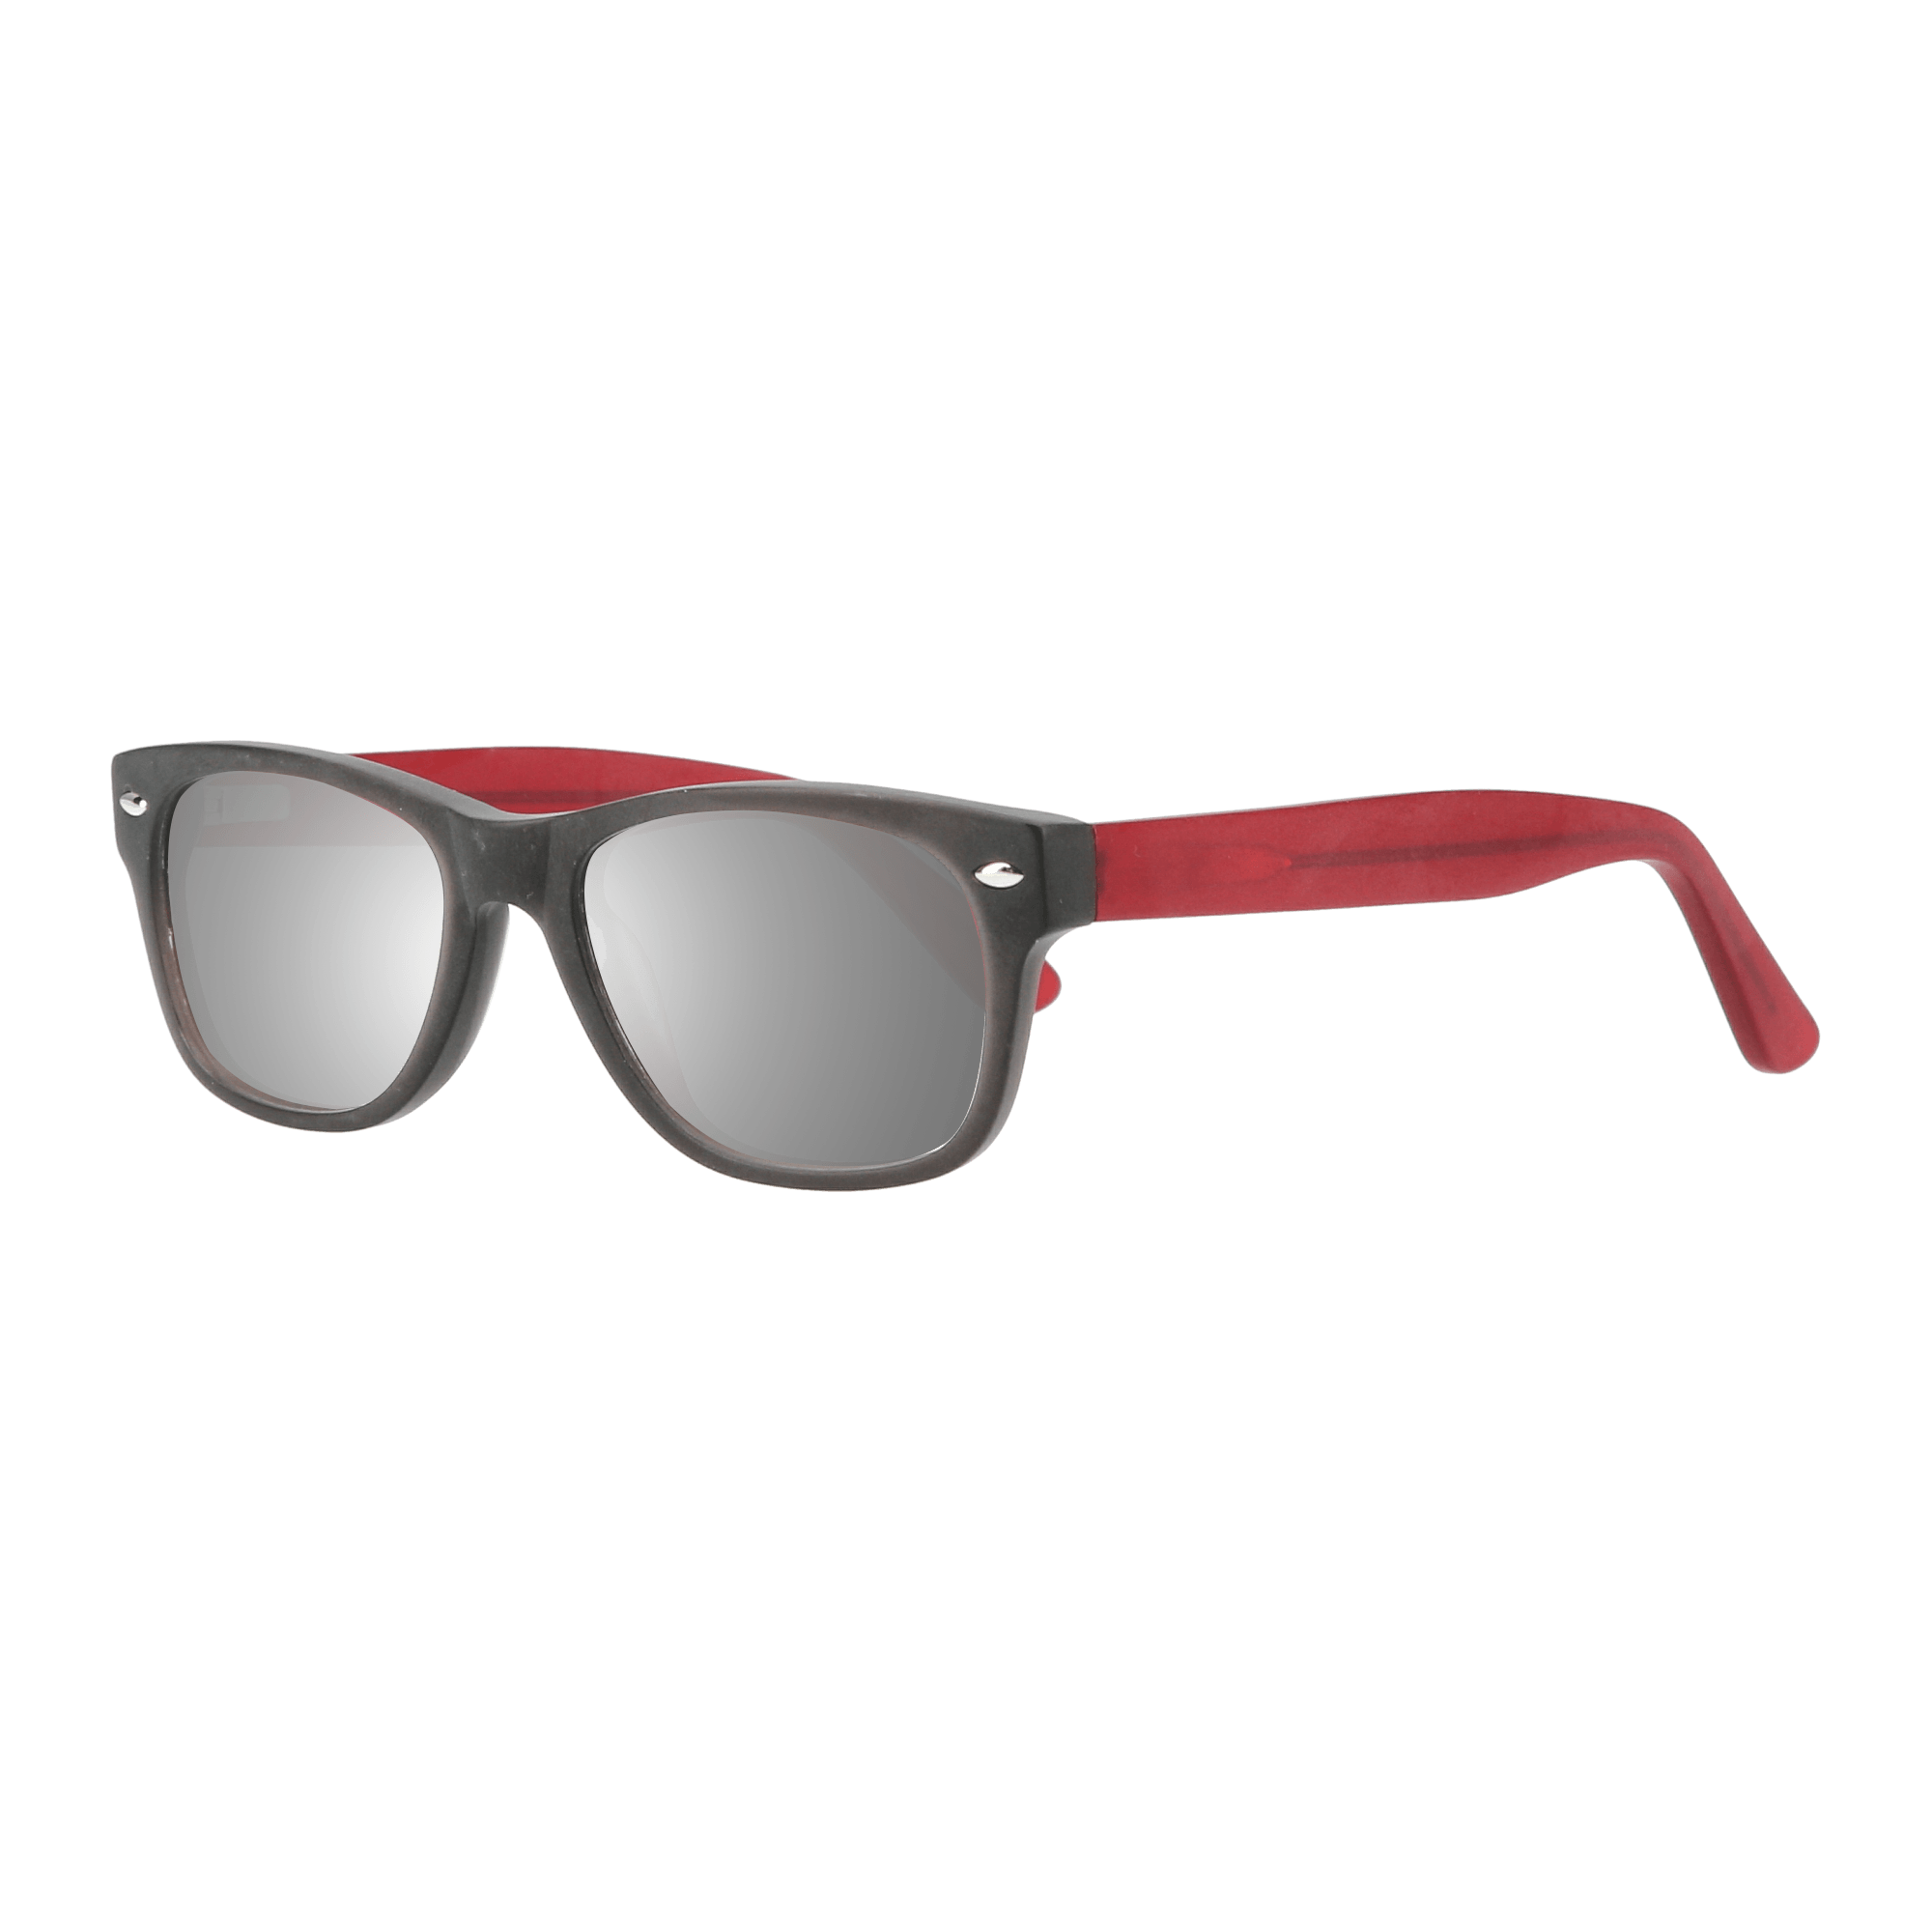 ELLIJAY - MATTE GREY-ROUGE SUNGLASSES SAINT REETS